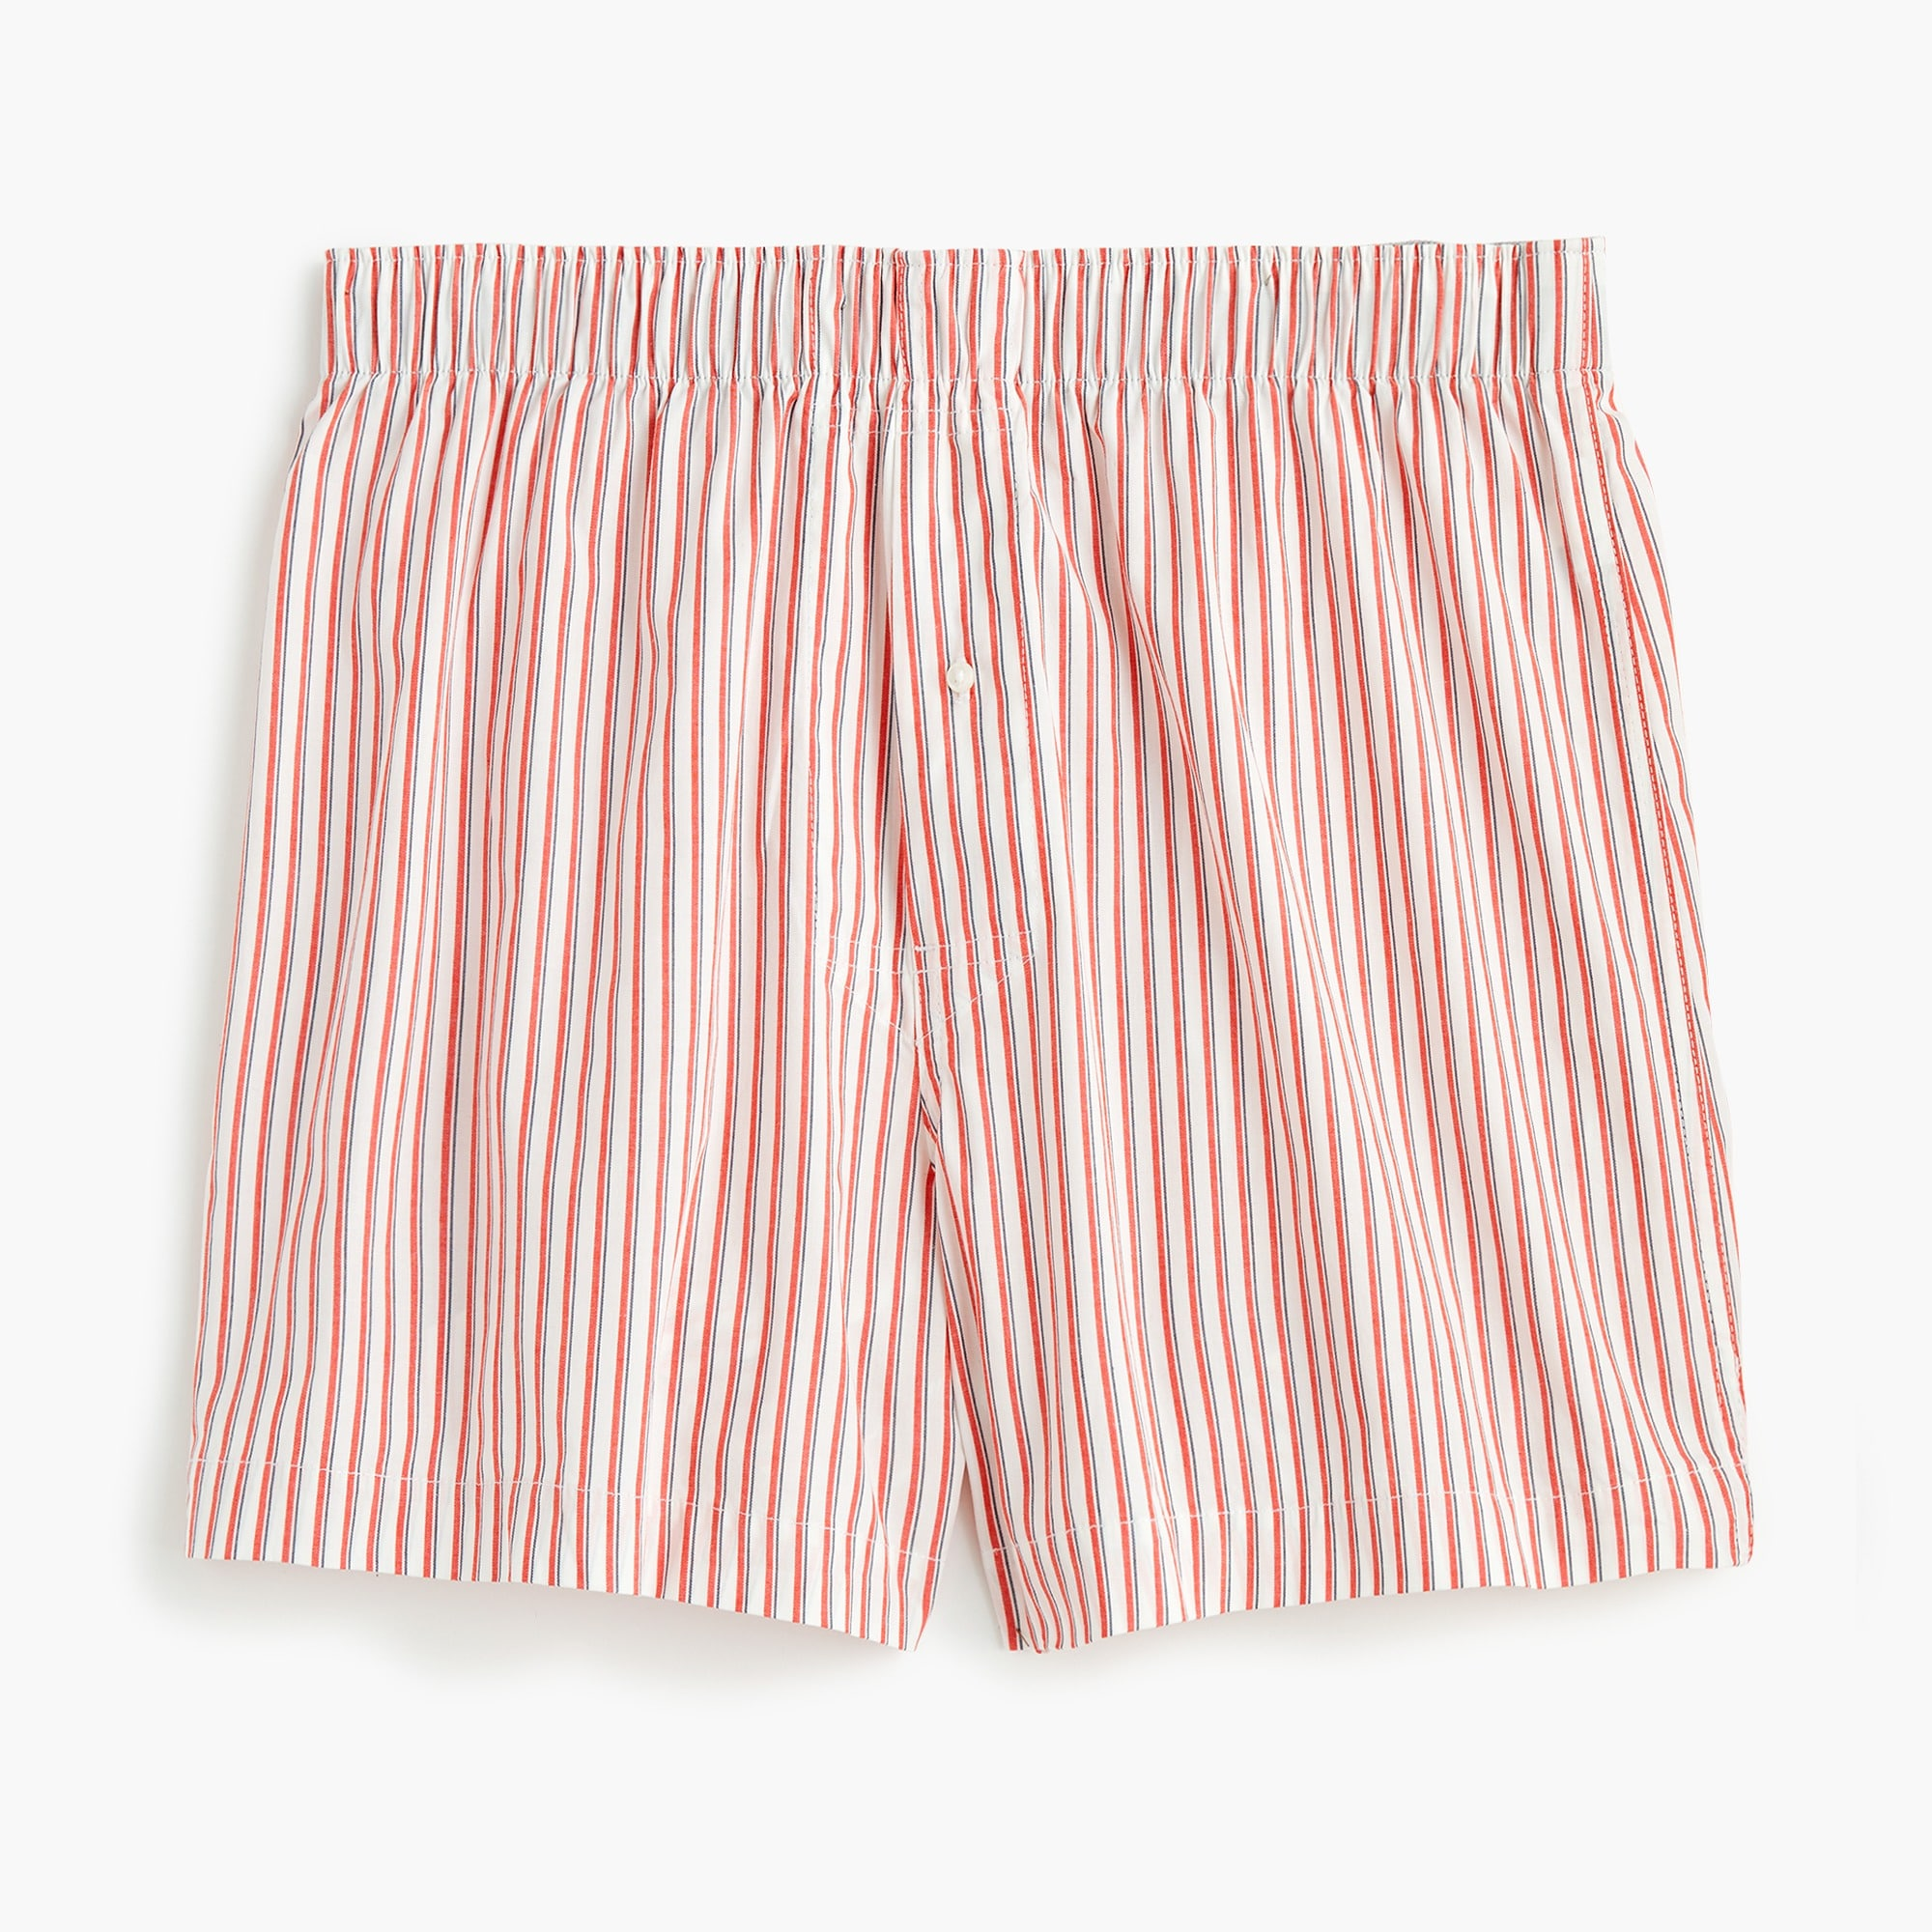 mens Stretch red and white striped boxers